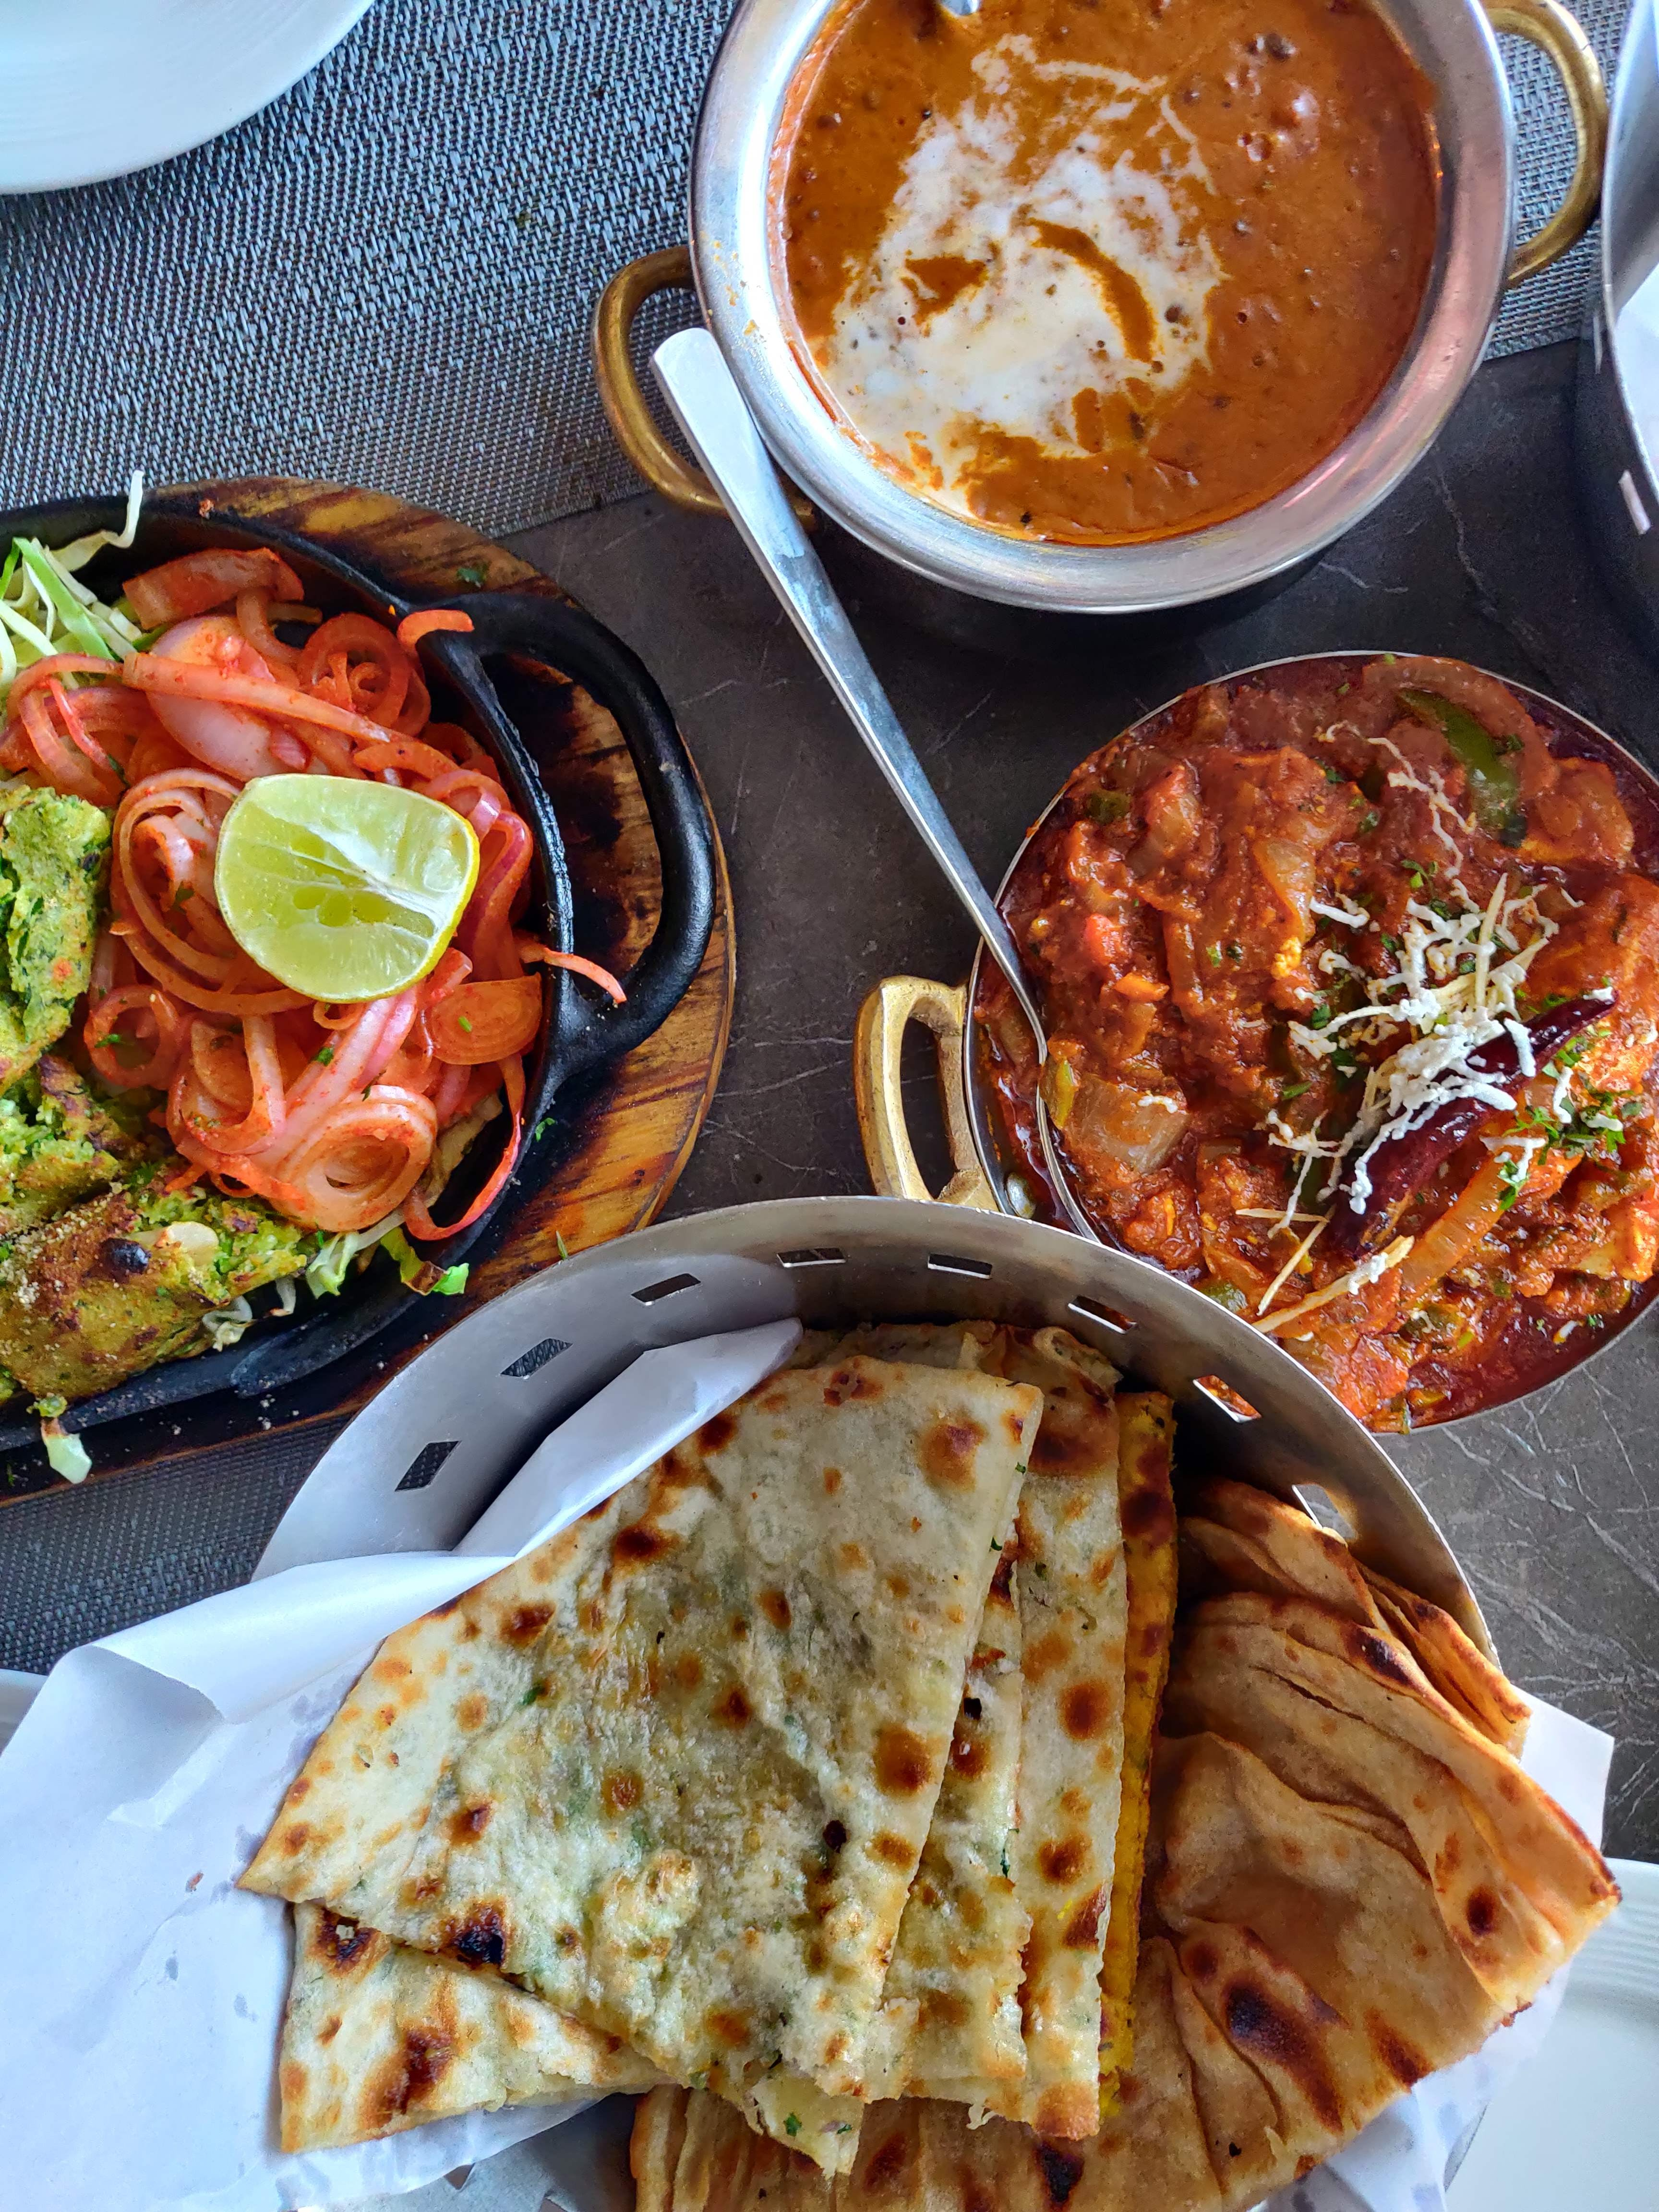 This Popular Restaurant Does Delicious North Indian Cuisine!